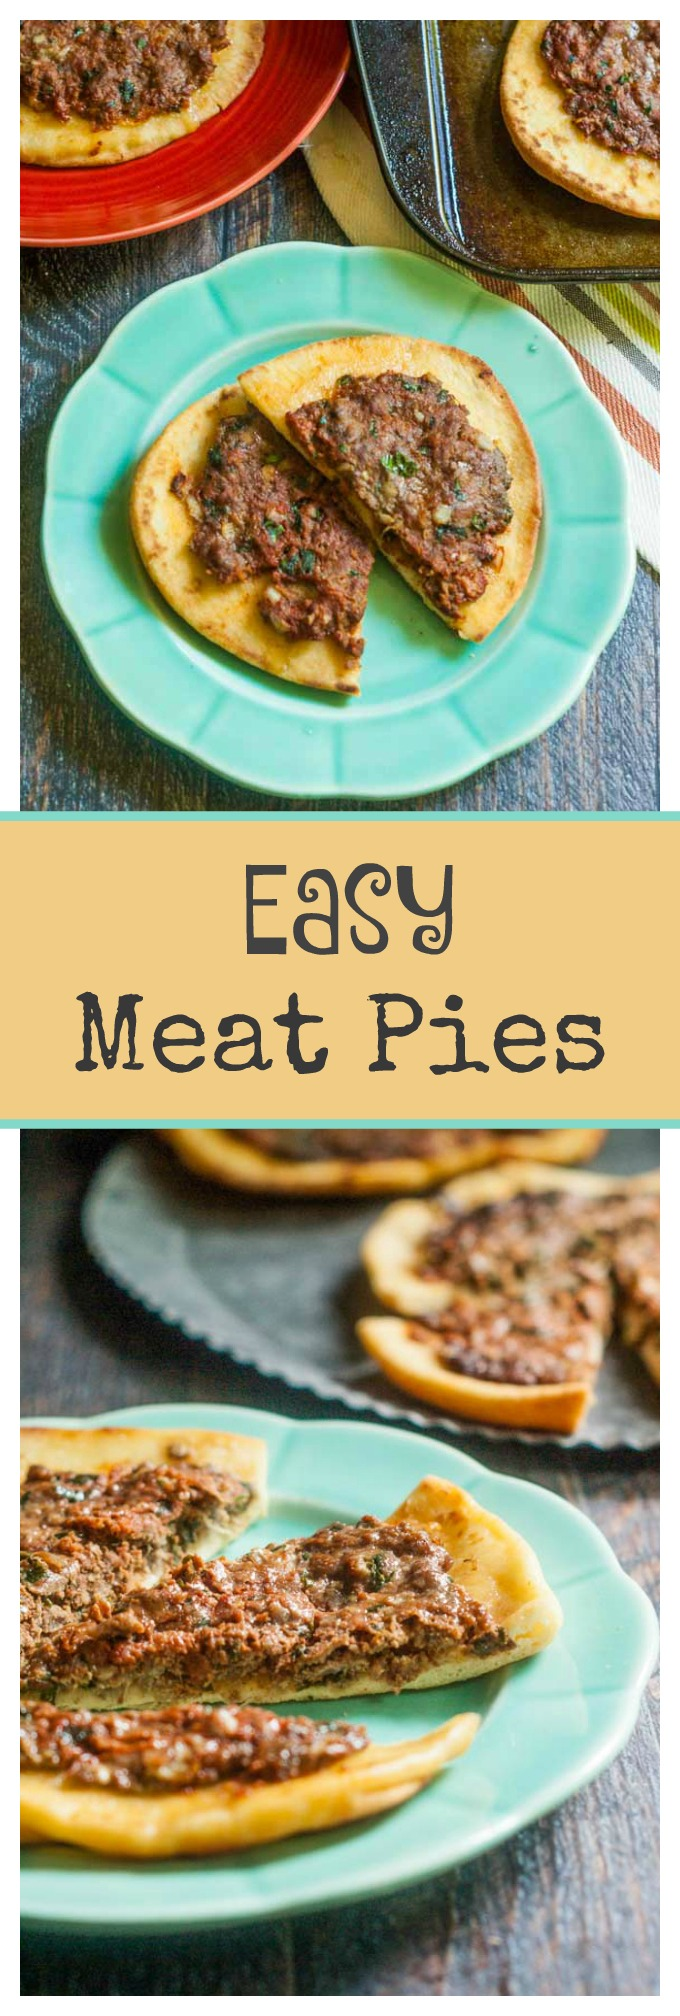 easy-meat-pies-pin